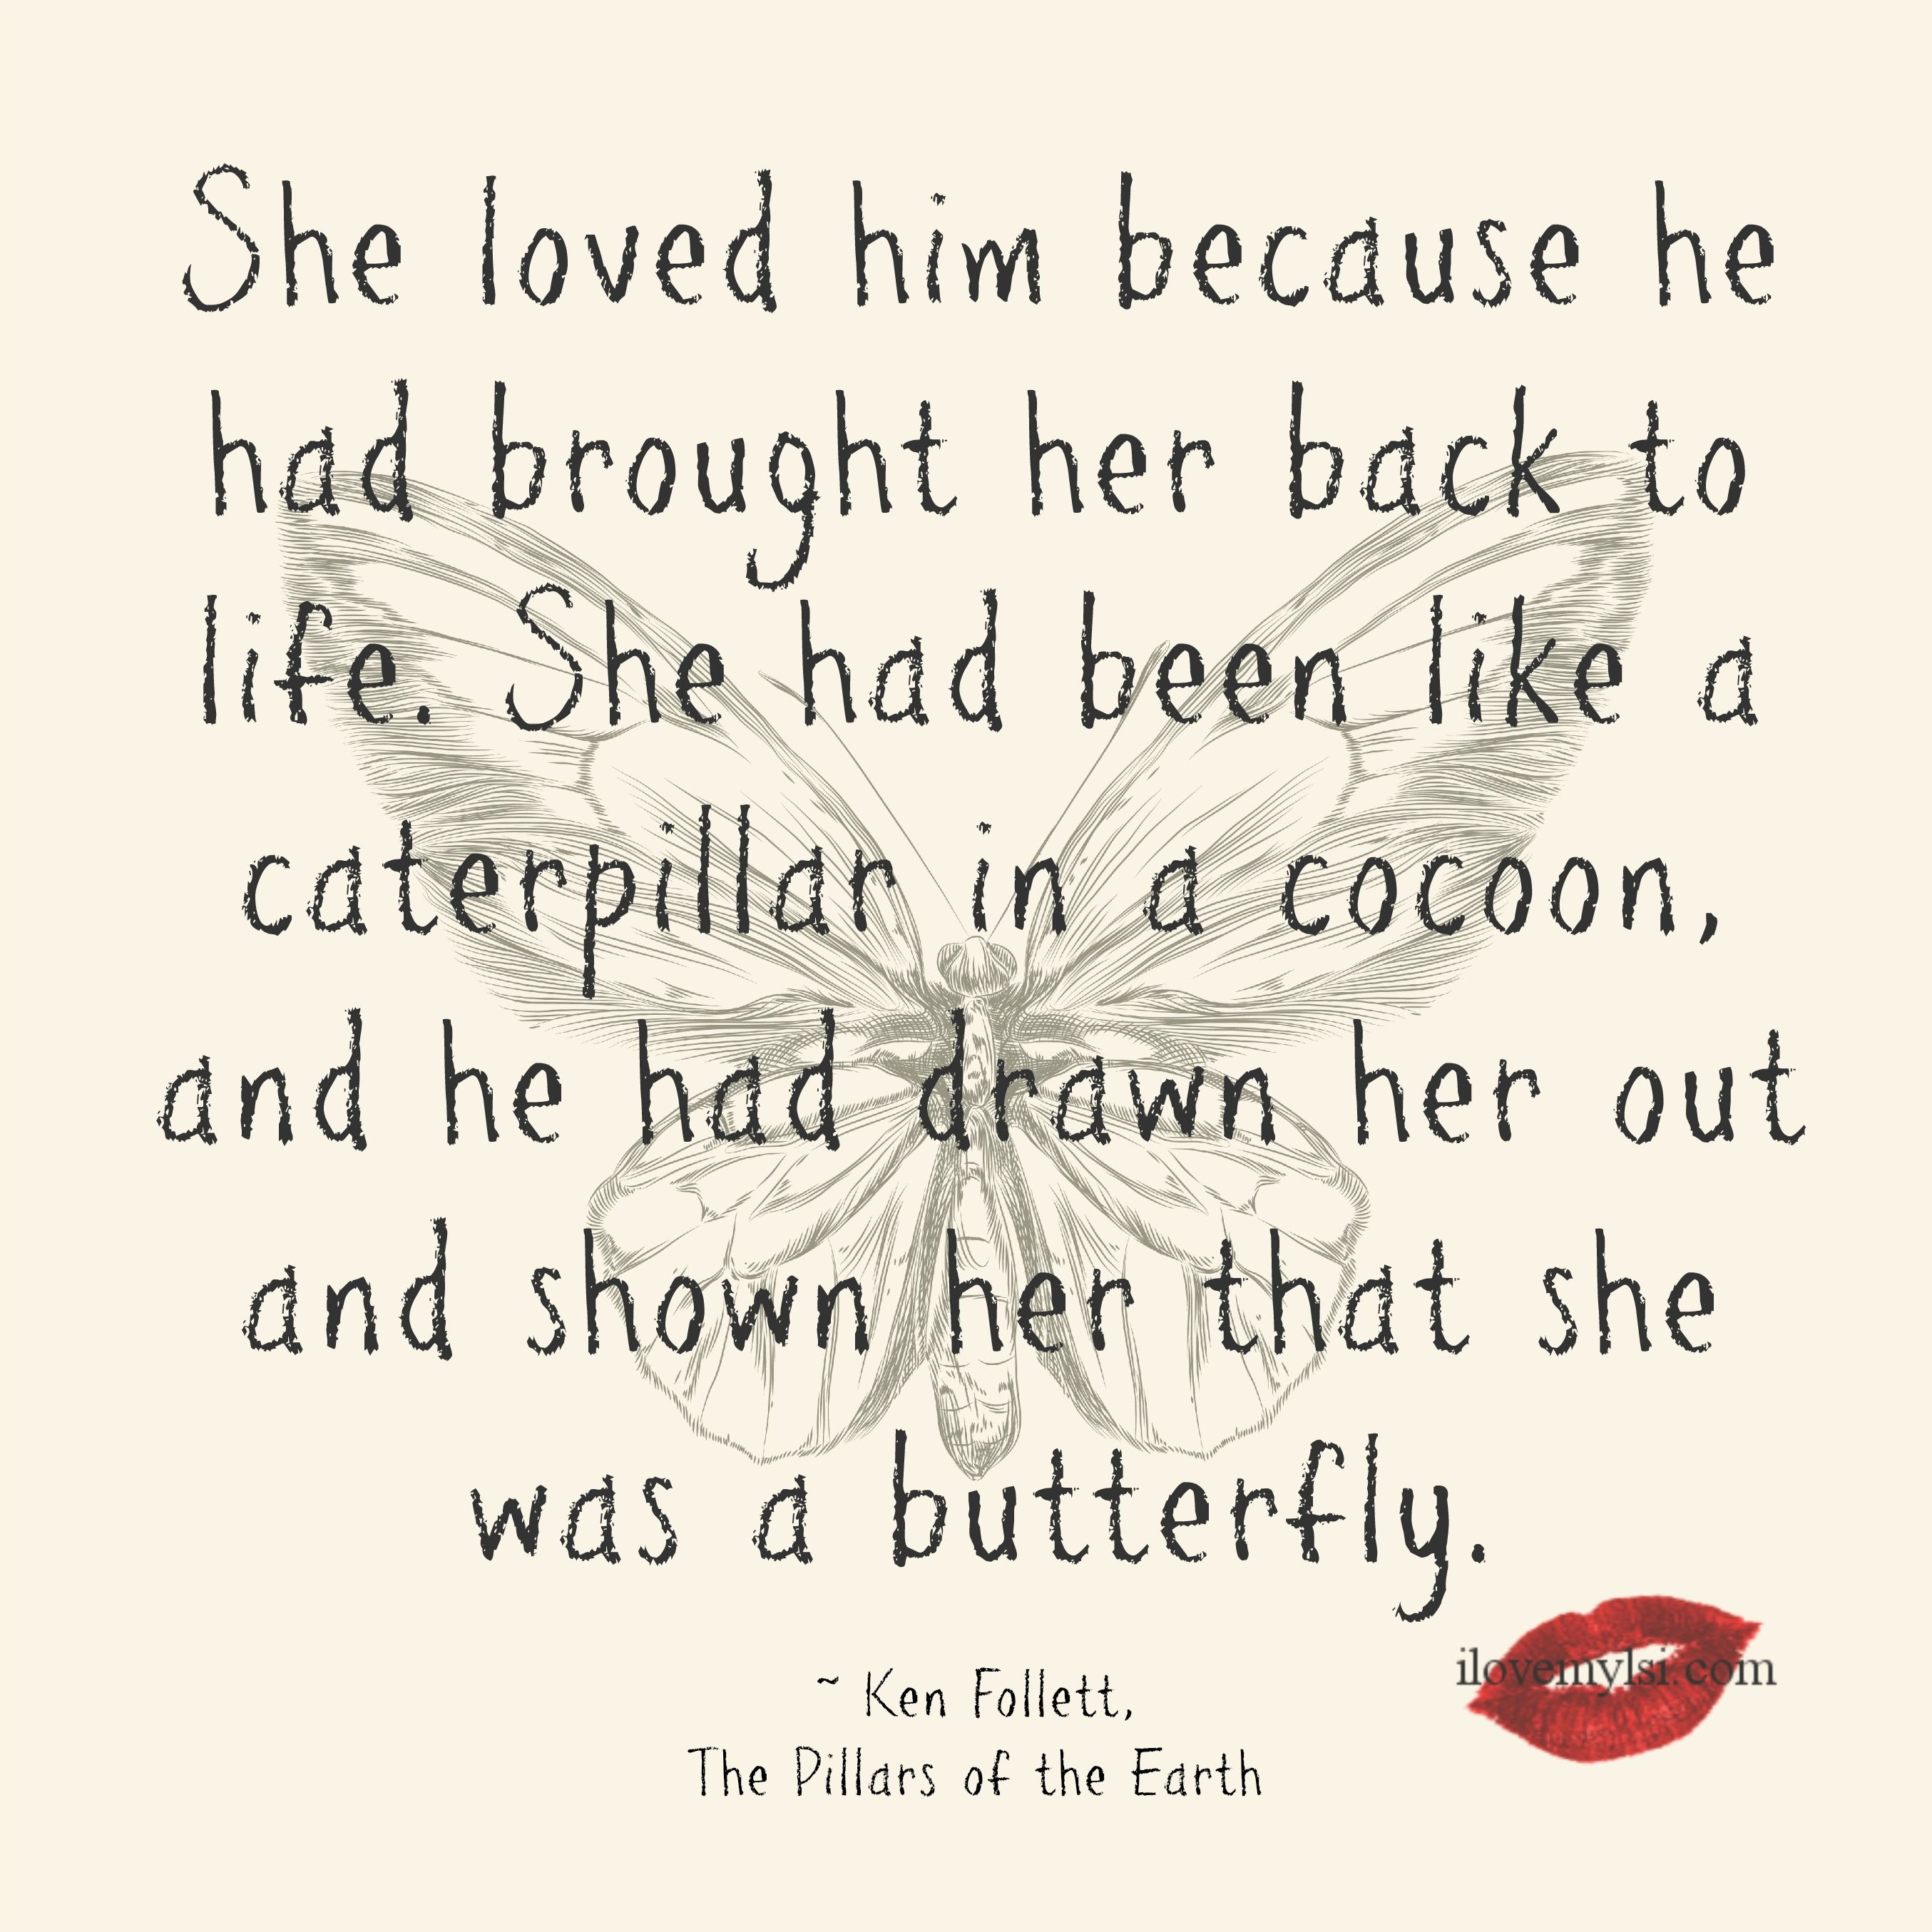 Romantic Love Quotes For Boyfriend The 25 Most Romantic Love Quotes You Will Ever Read Page 24 Of